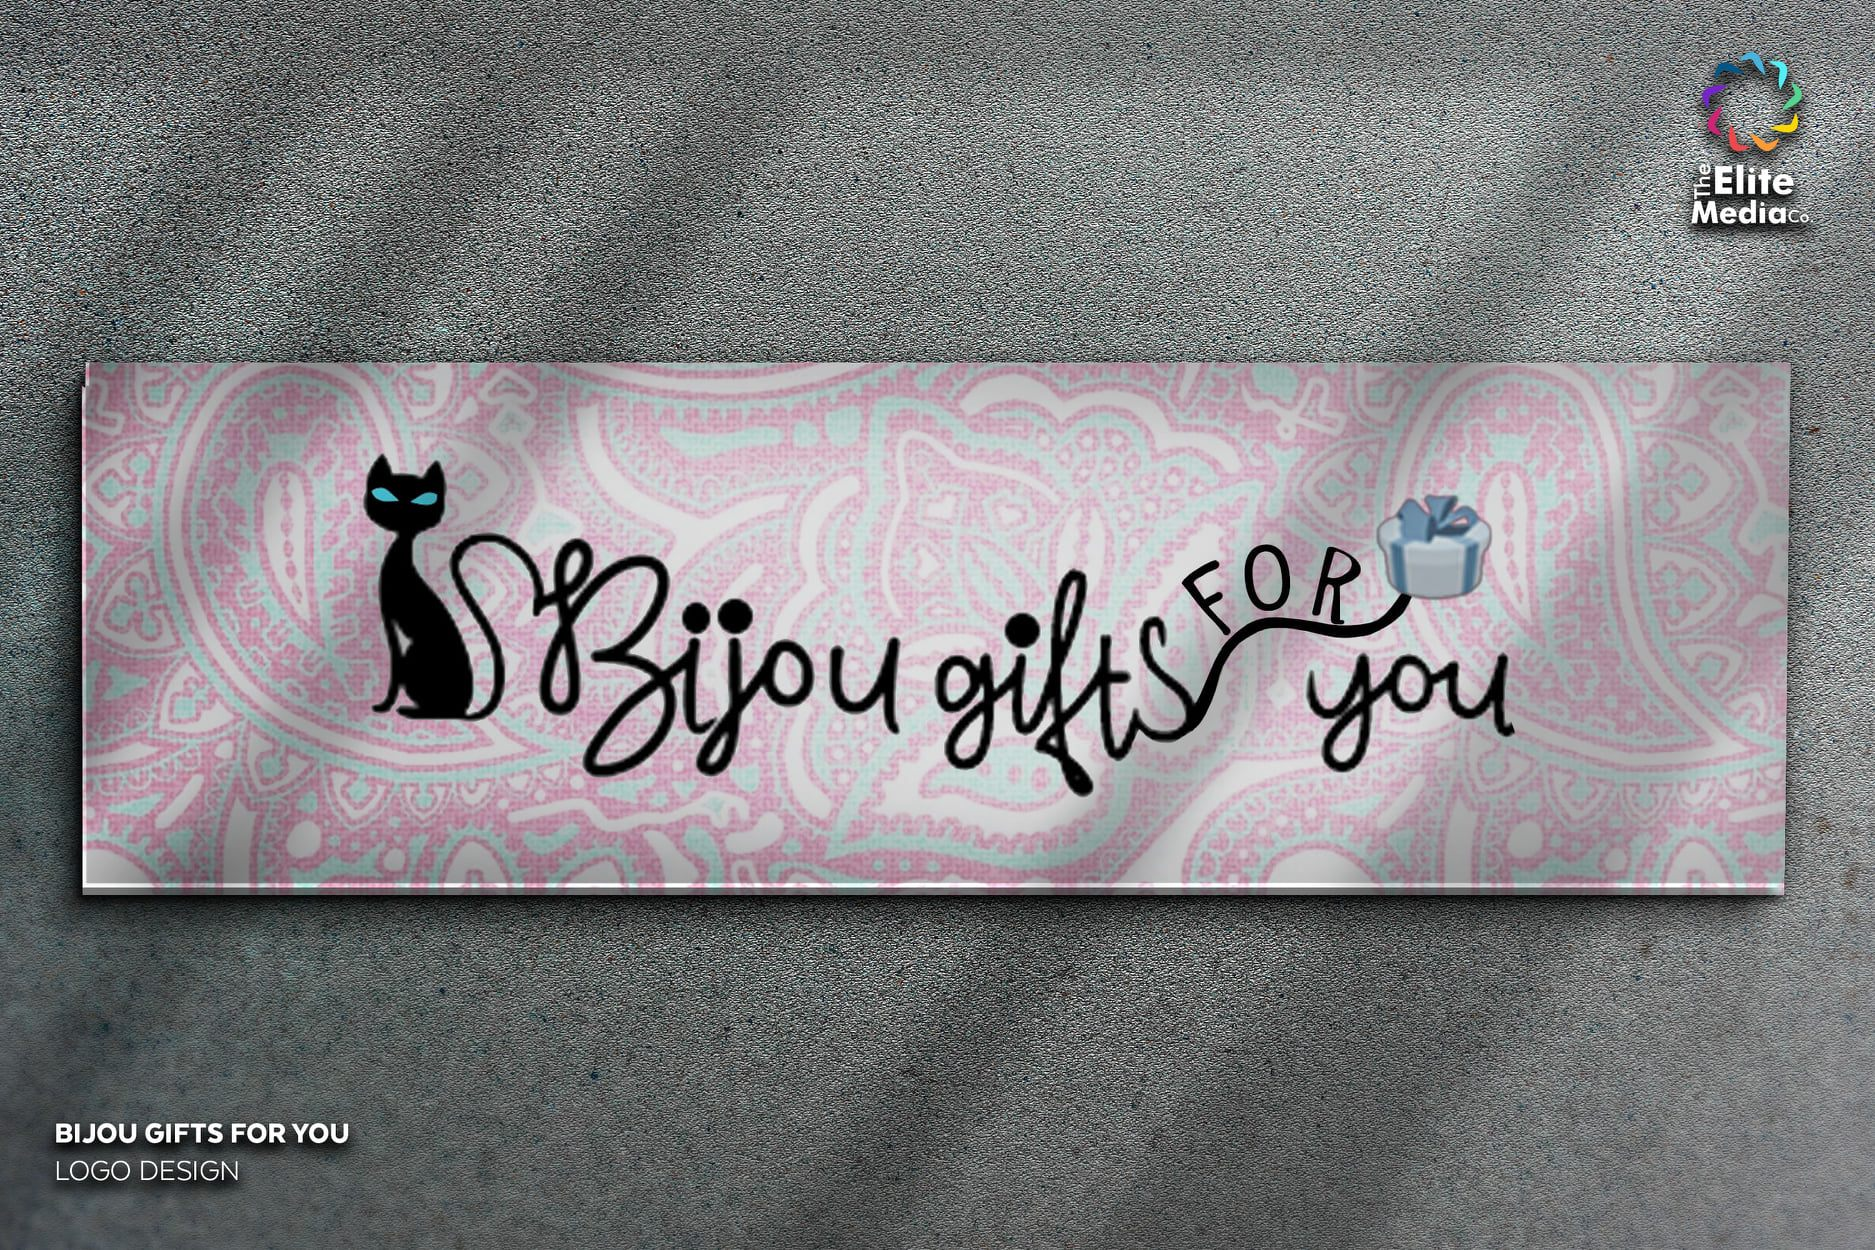 Bijou Gifts For You – Banner Design